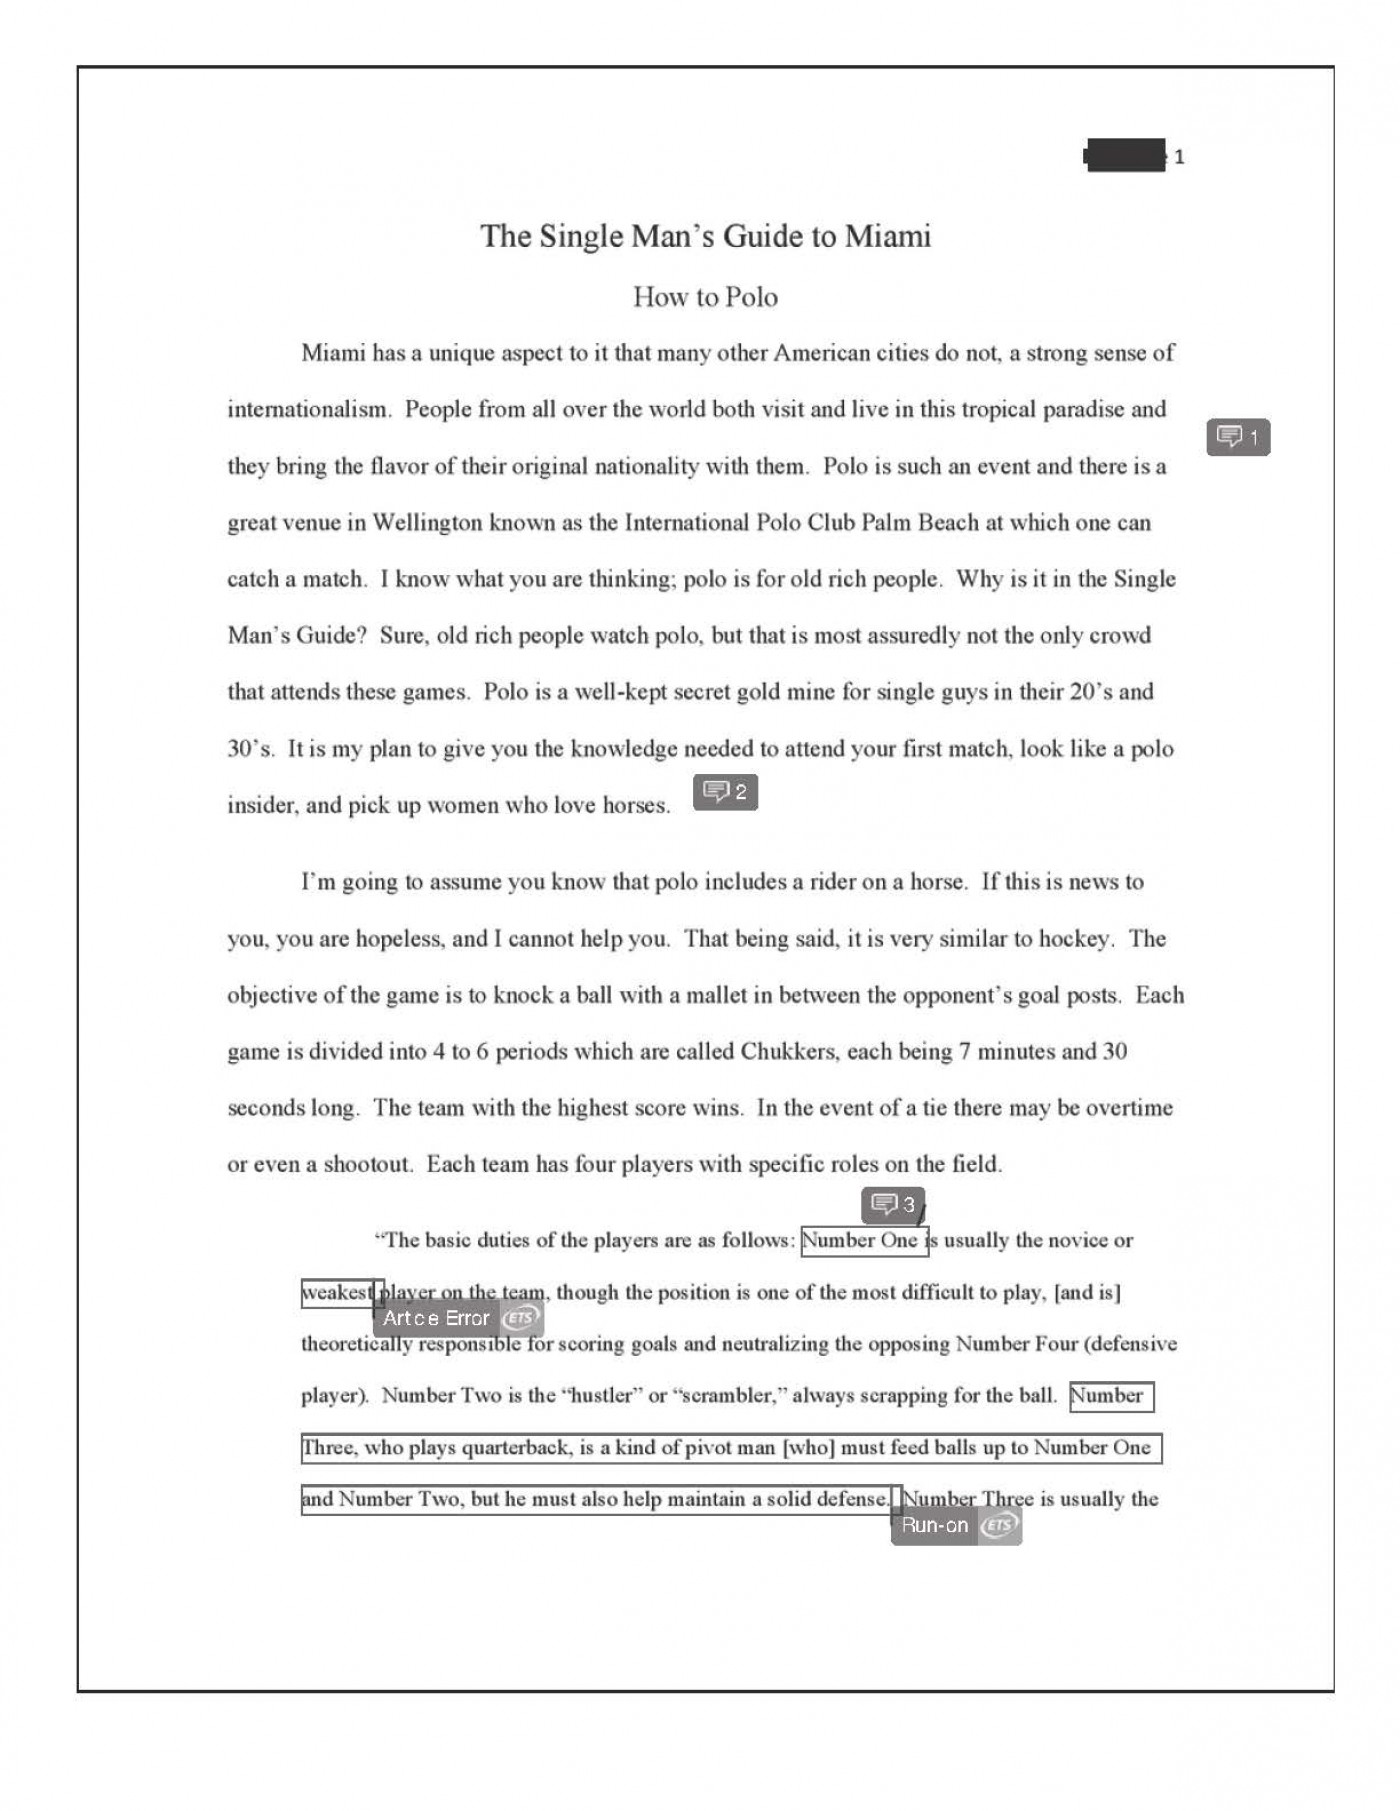 005 Informative Essay Topics Essays Sample Funny Argumentative For Middle School Final How To Polo Redacted P College Students Hilarious Good Remarkable 4th Grade Expository High 6th Graders 1400